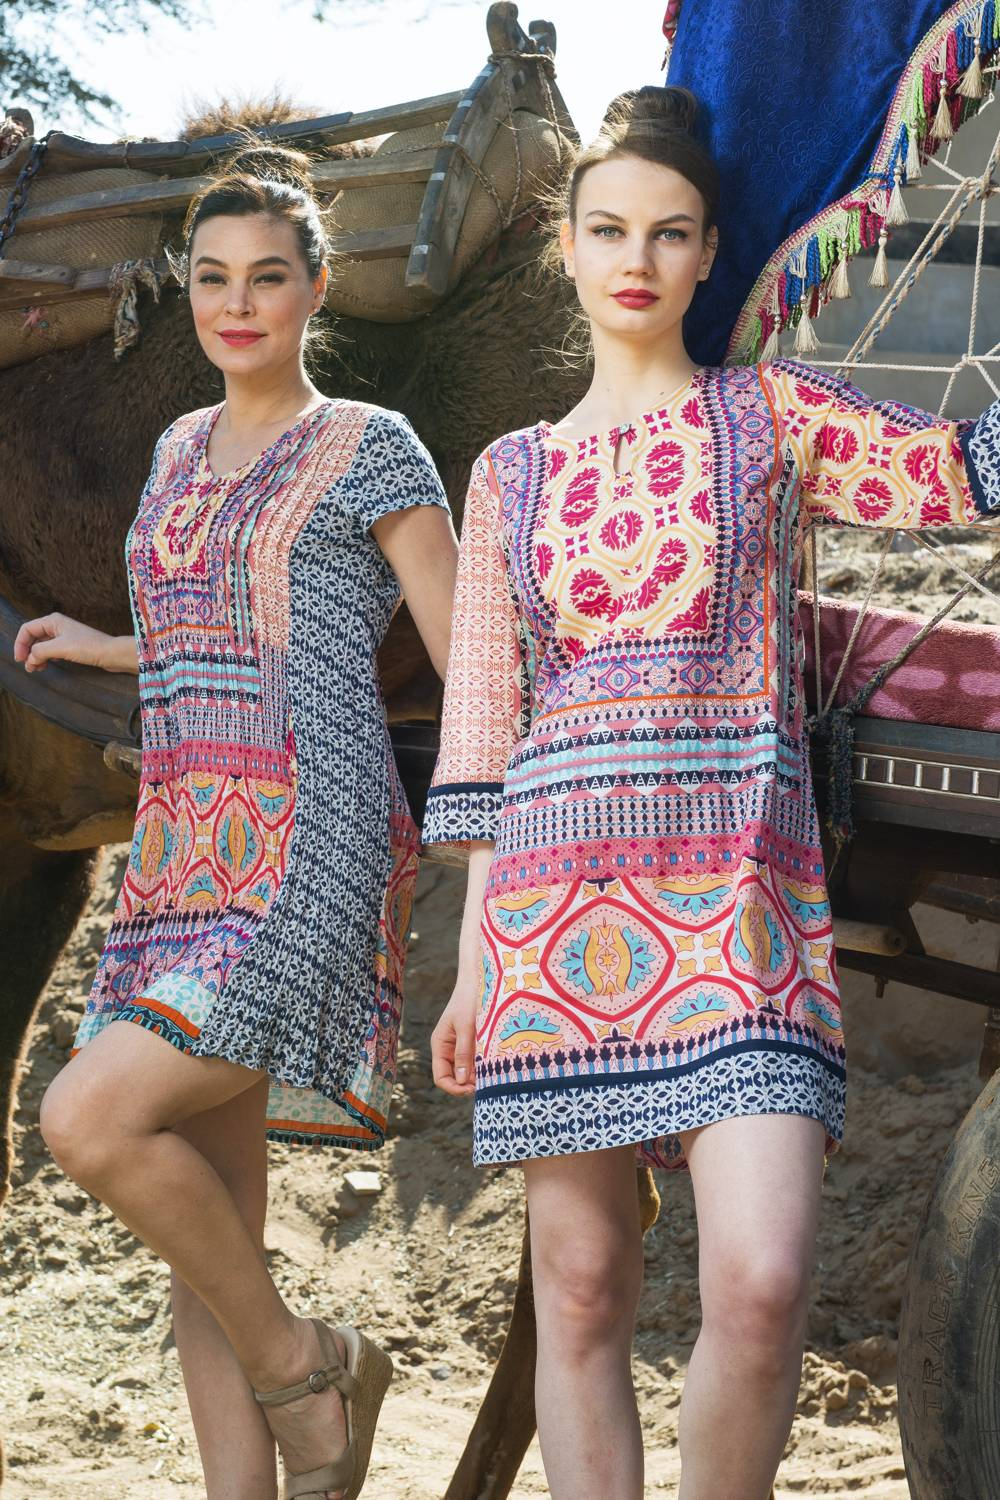 Olympia Print Tunic Dress - at I Love Tunics @ www.ilovetunics.com = Number One! Tunics Destination